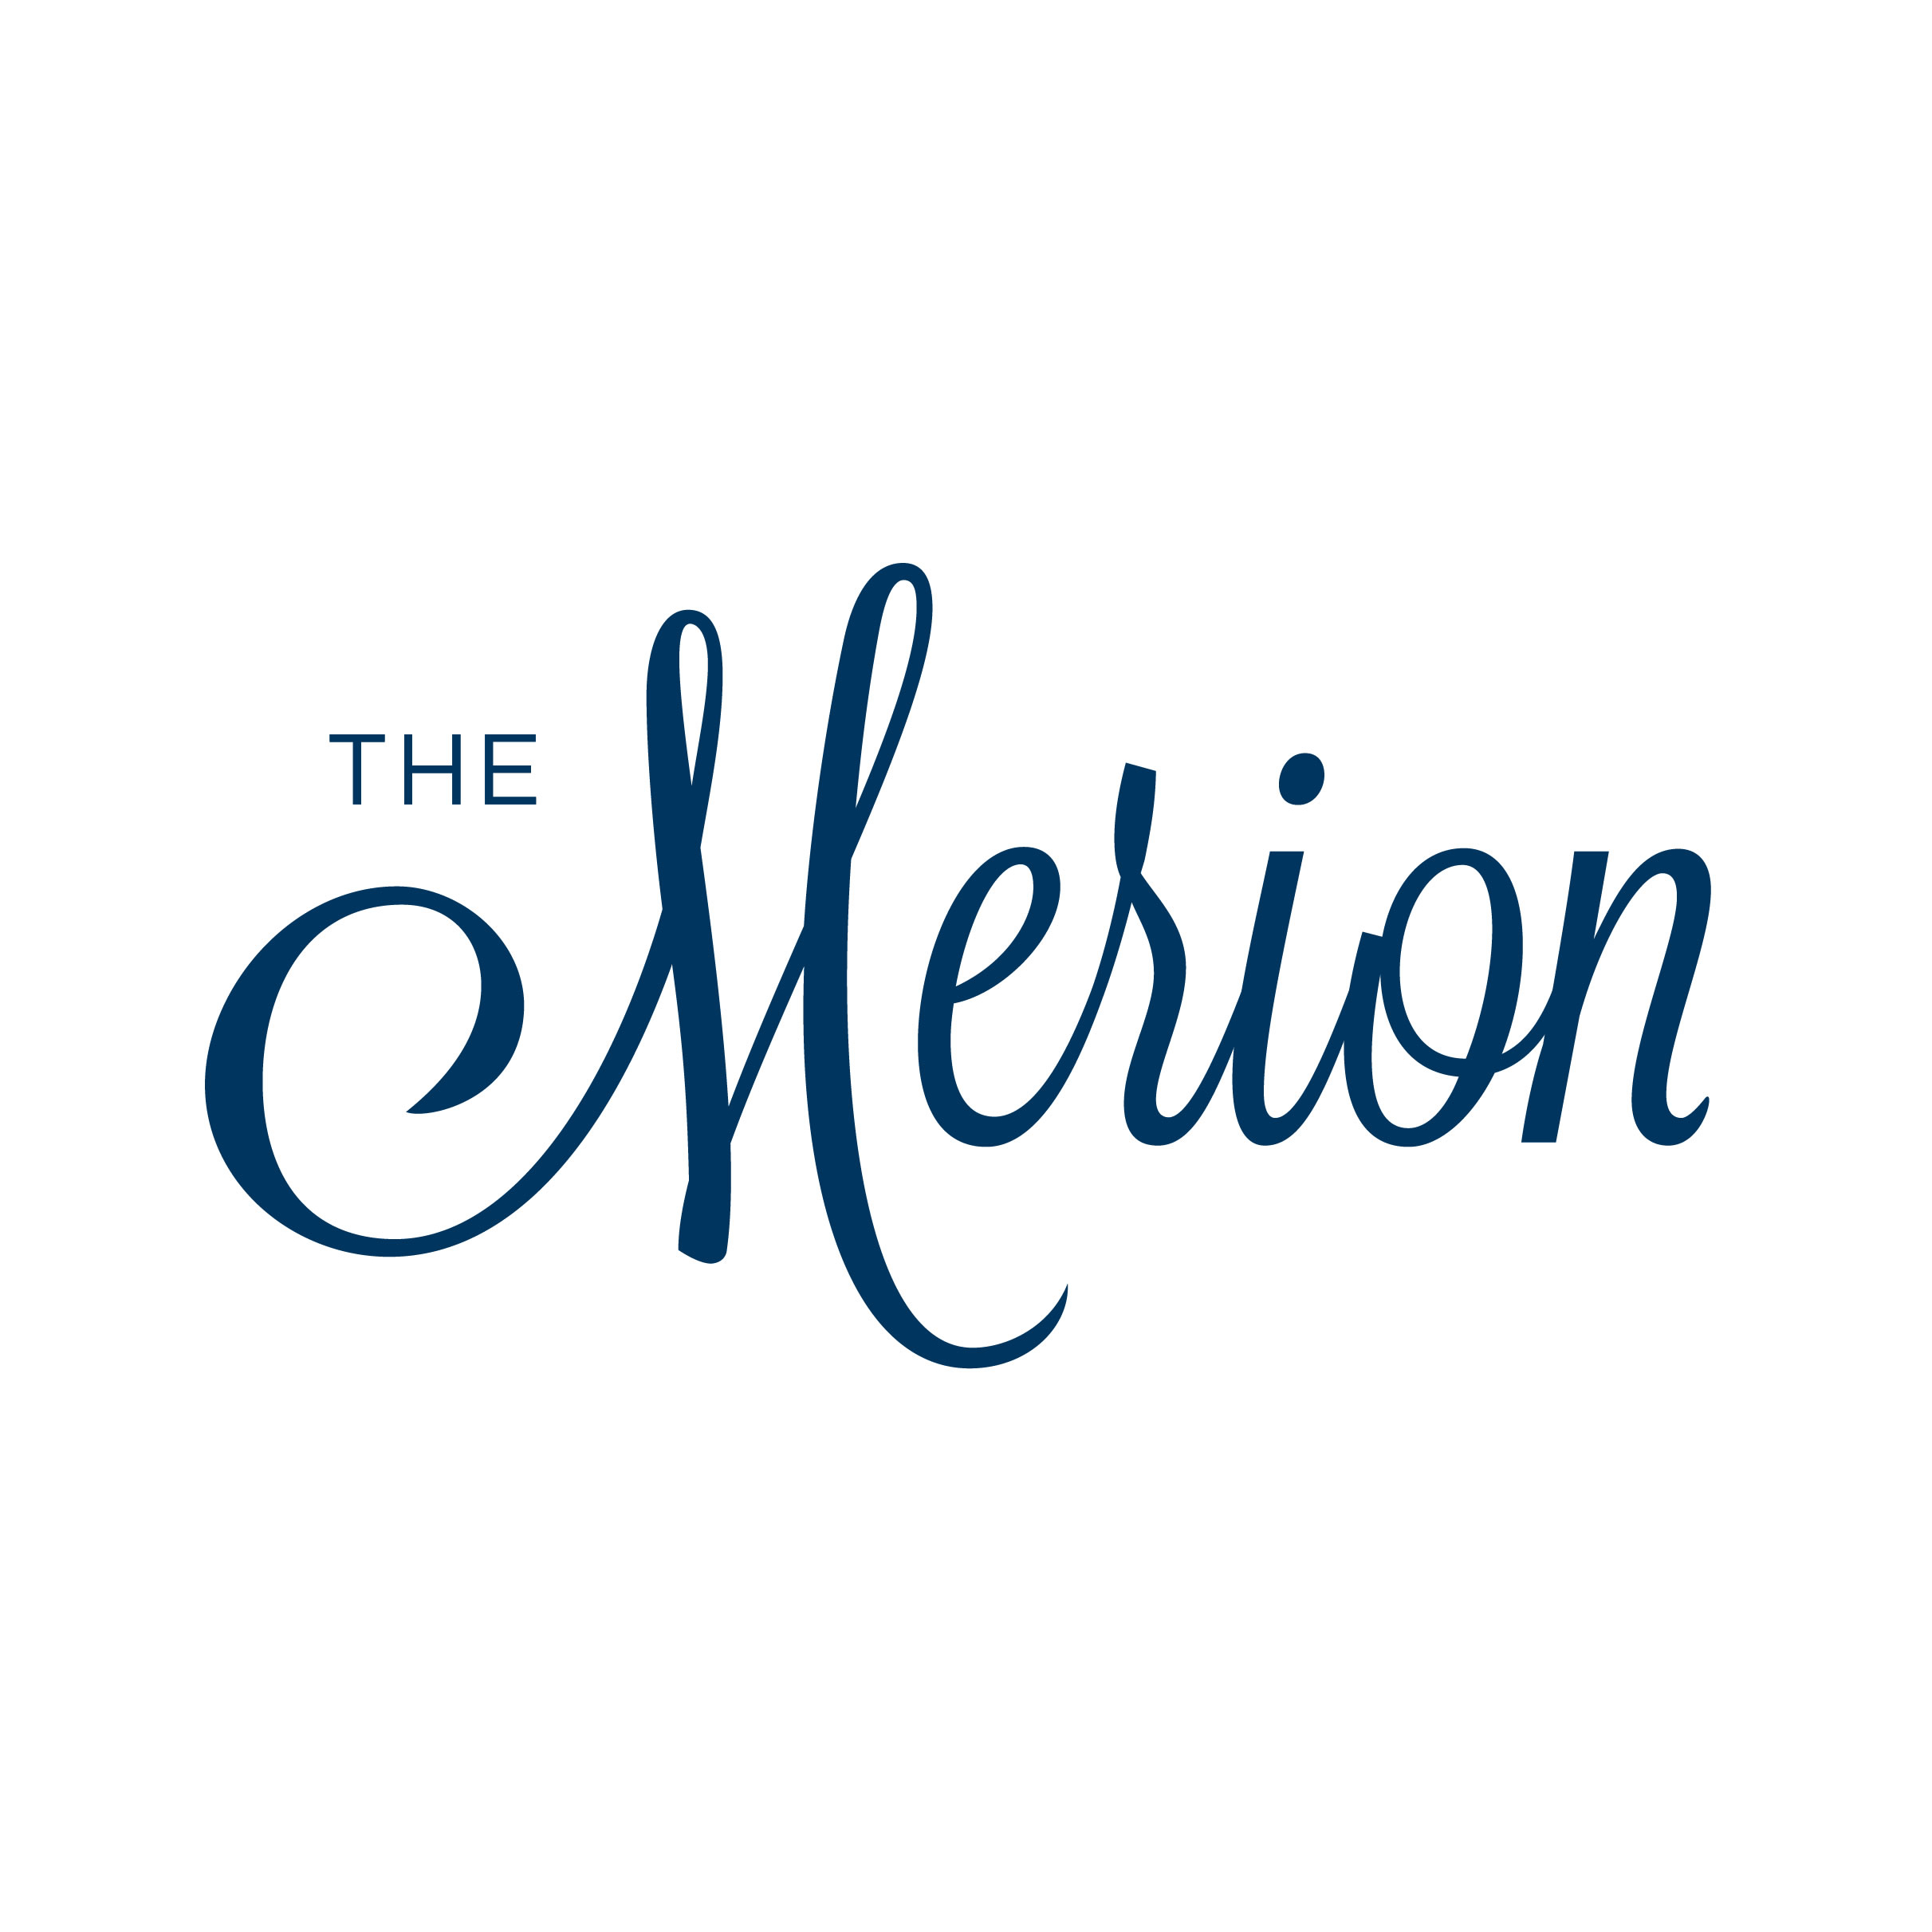 The merion coupons near me in evanston 8coupons for Independent hotels near me